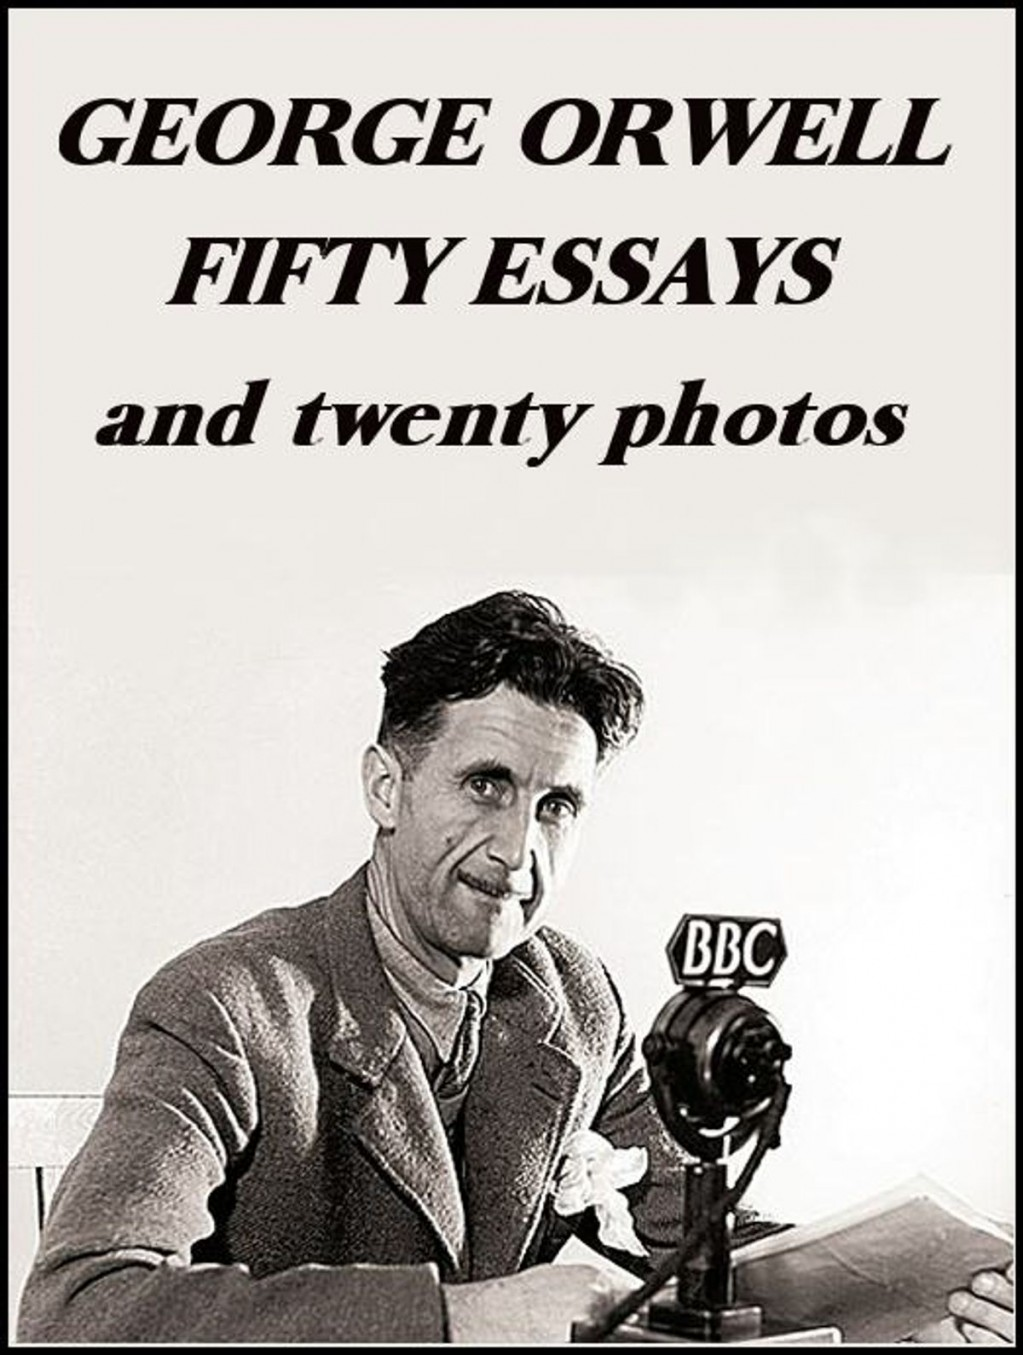 010 Essay Example George Orwell Fifty Frightening Essays 1984 Summary Collected Pdf On Writing Large